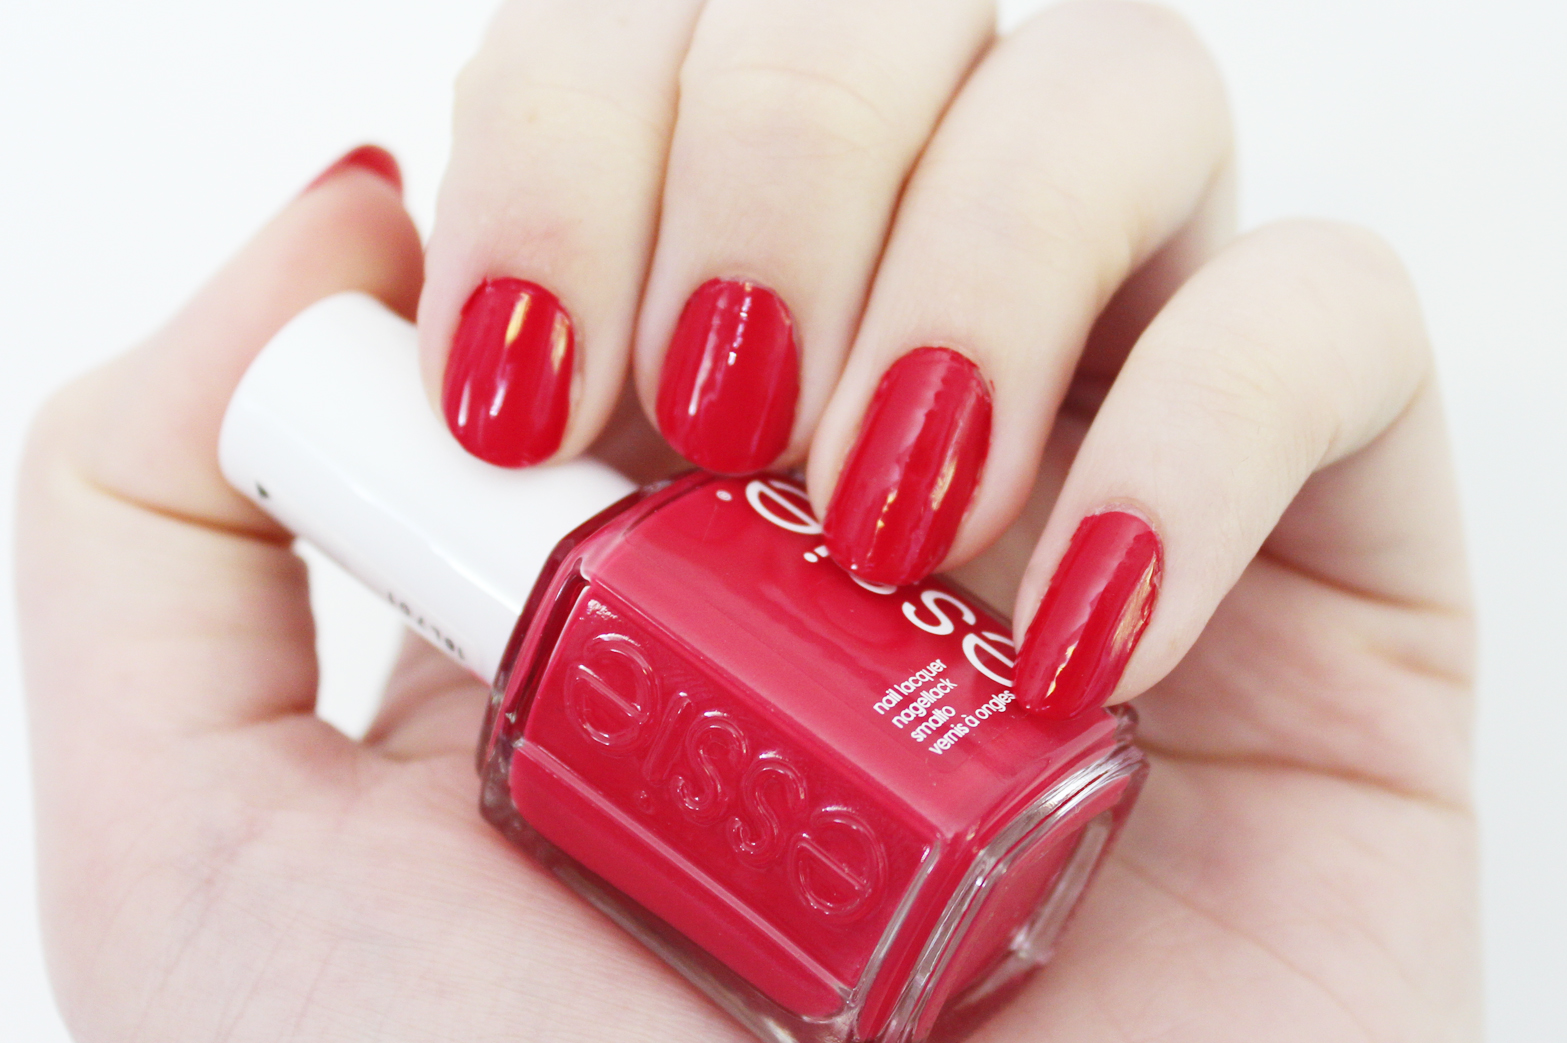 ESSIE | gel setter Top Coat + 'Double Breasted Jacket' - Review + Swatches - CassandraMyee